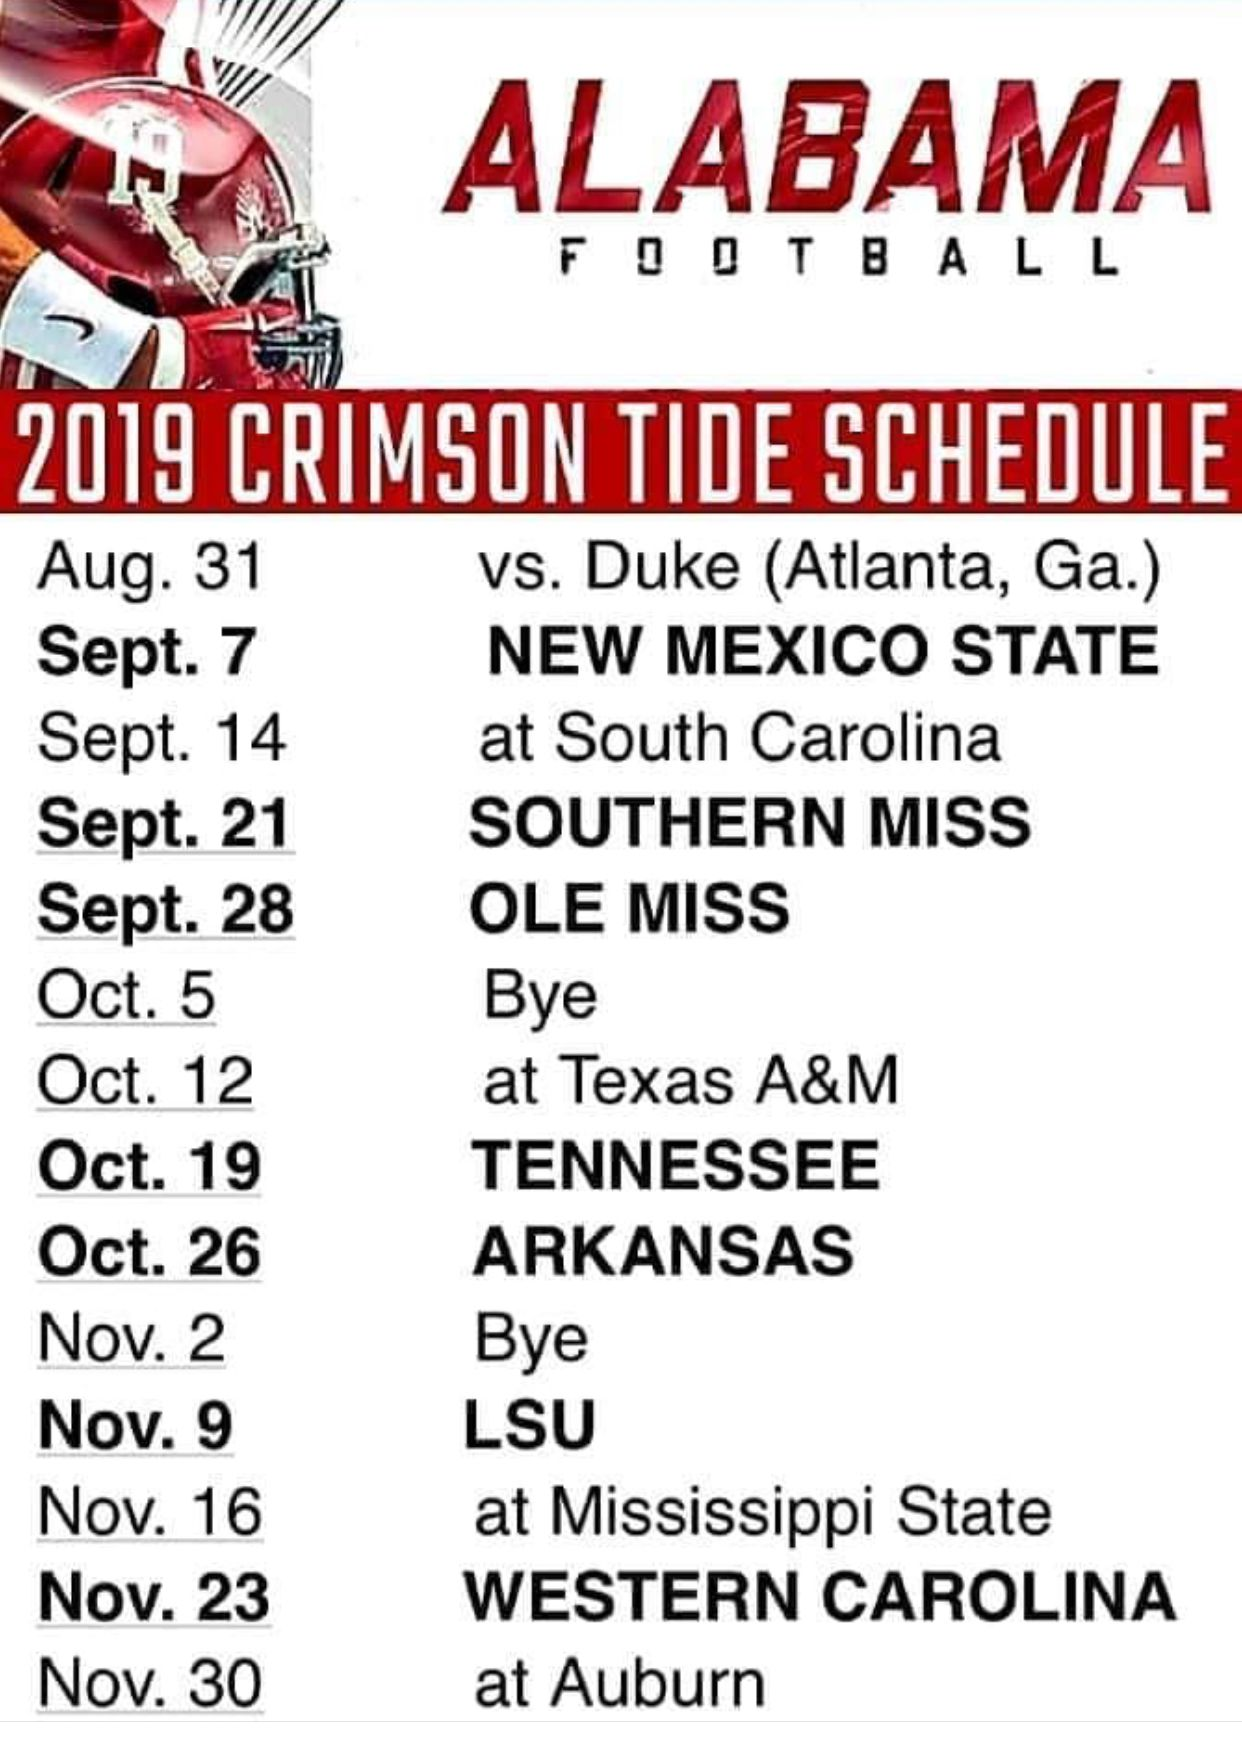 Alabama Football Schedule 2020 2019 Crimson Tide football schedule | Alabama Football 2019 2020